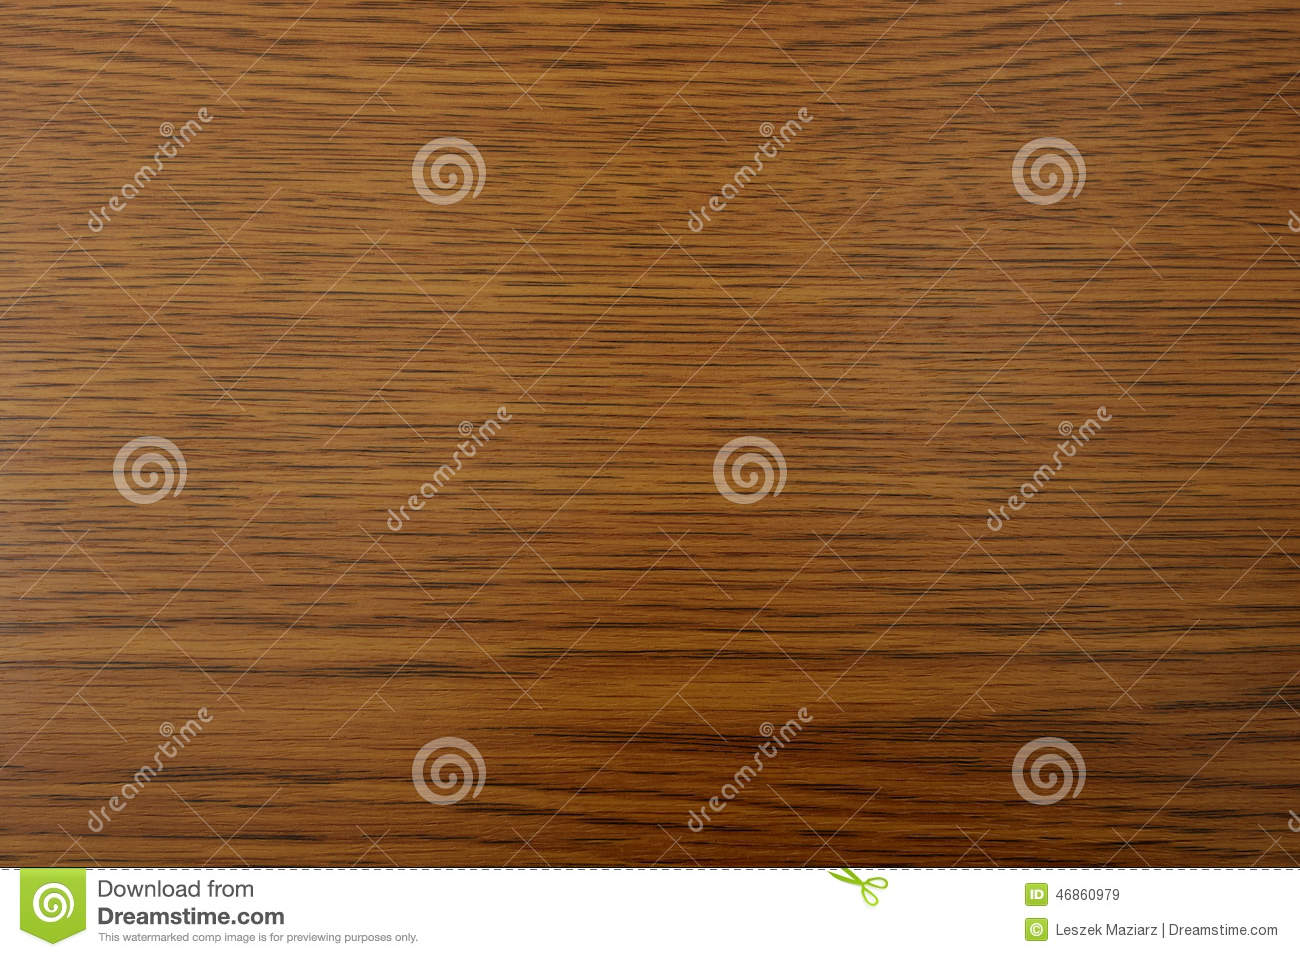 Fine Red Oak Wood Grain Texture Stock Photo Image 46860979